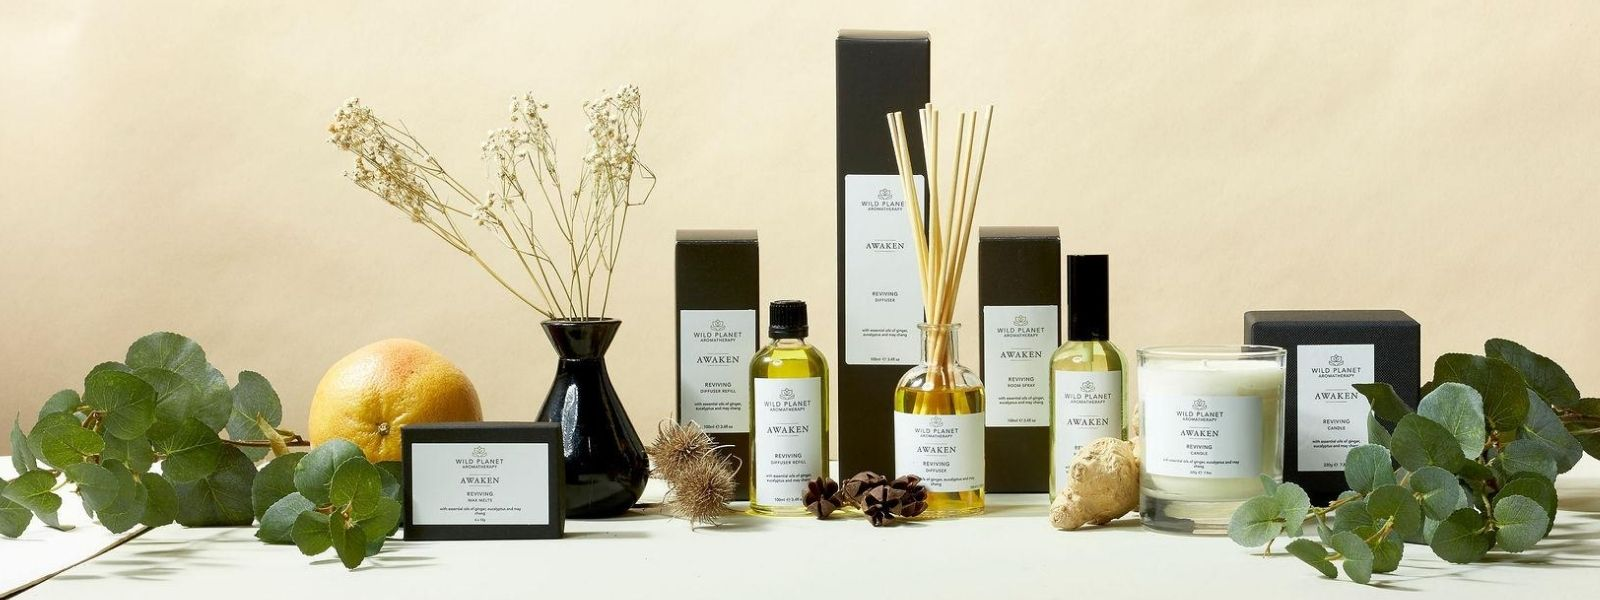 Awaken Reed Diffuser, Room Spray, candle and wax melts by Wild Planet Aromatherapy next to fresh ginger, grapefruit and eucalyptus